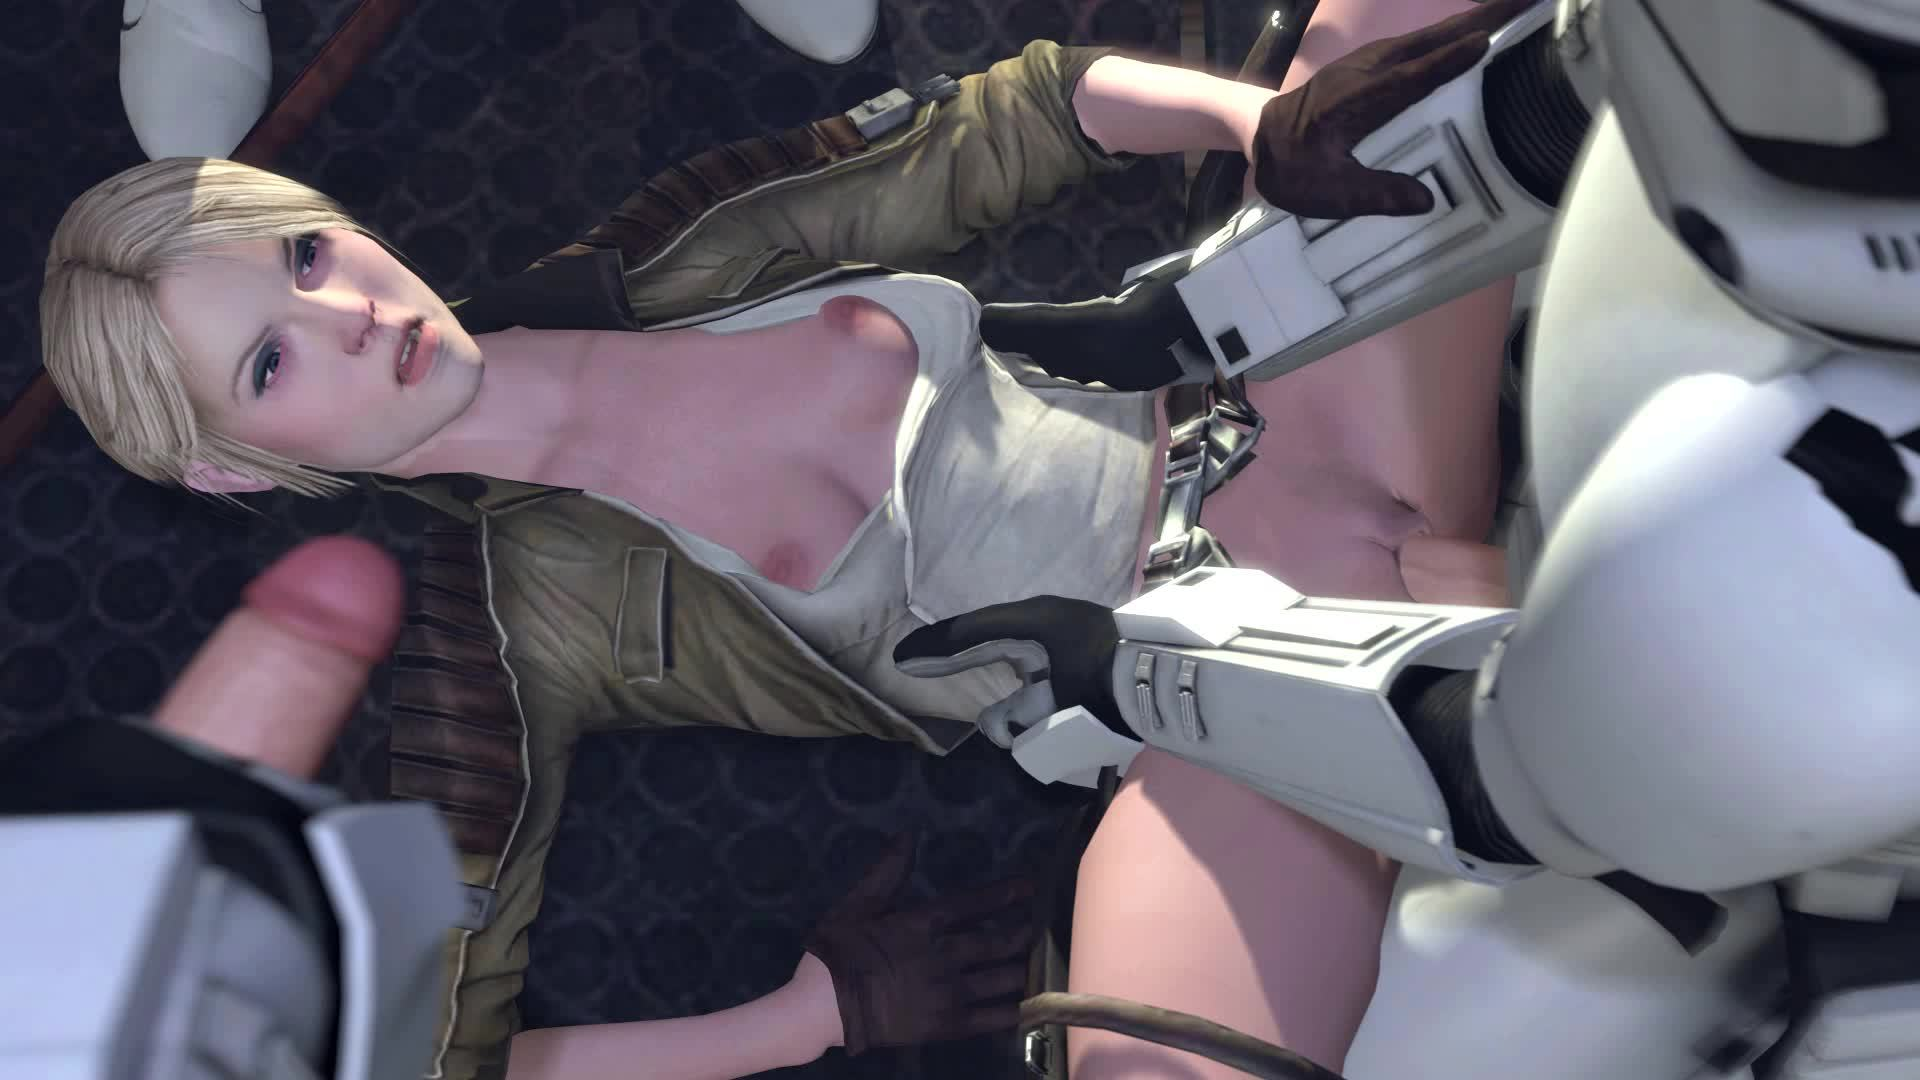 Nude star wars sex videos softcore picture